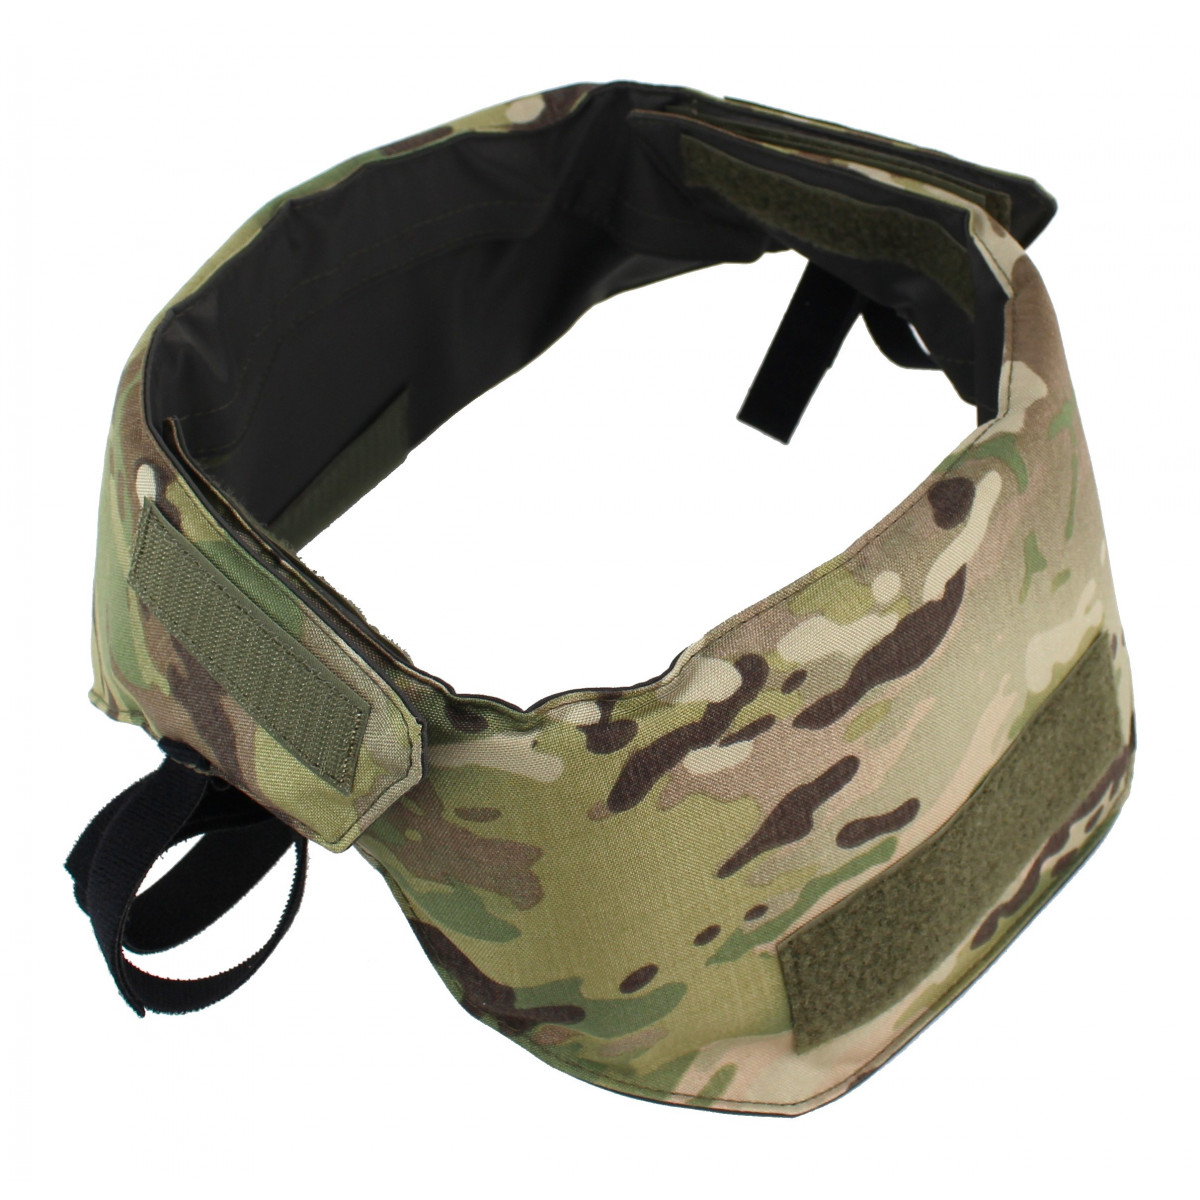 Neck Protection